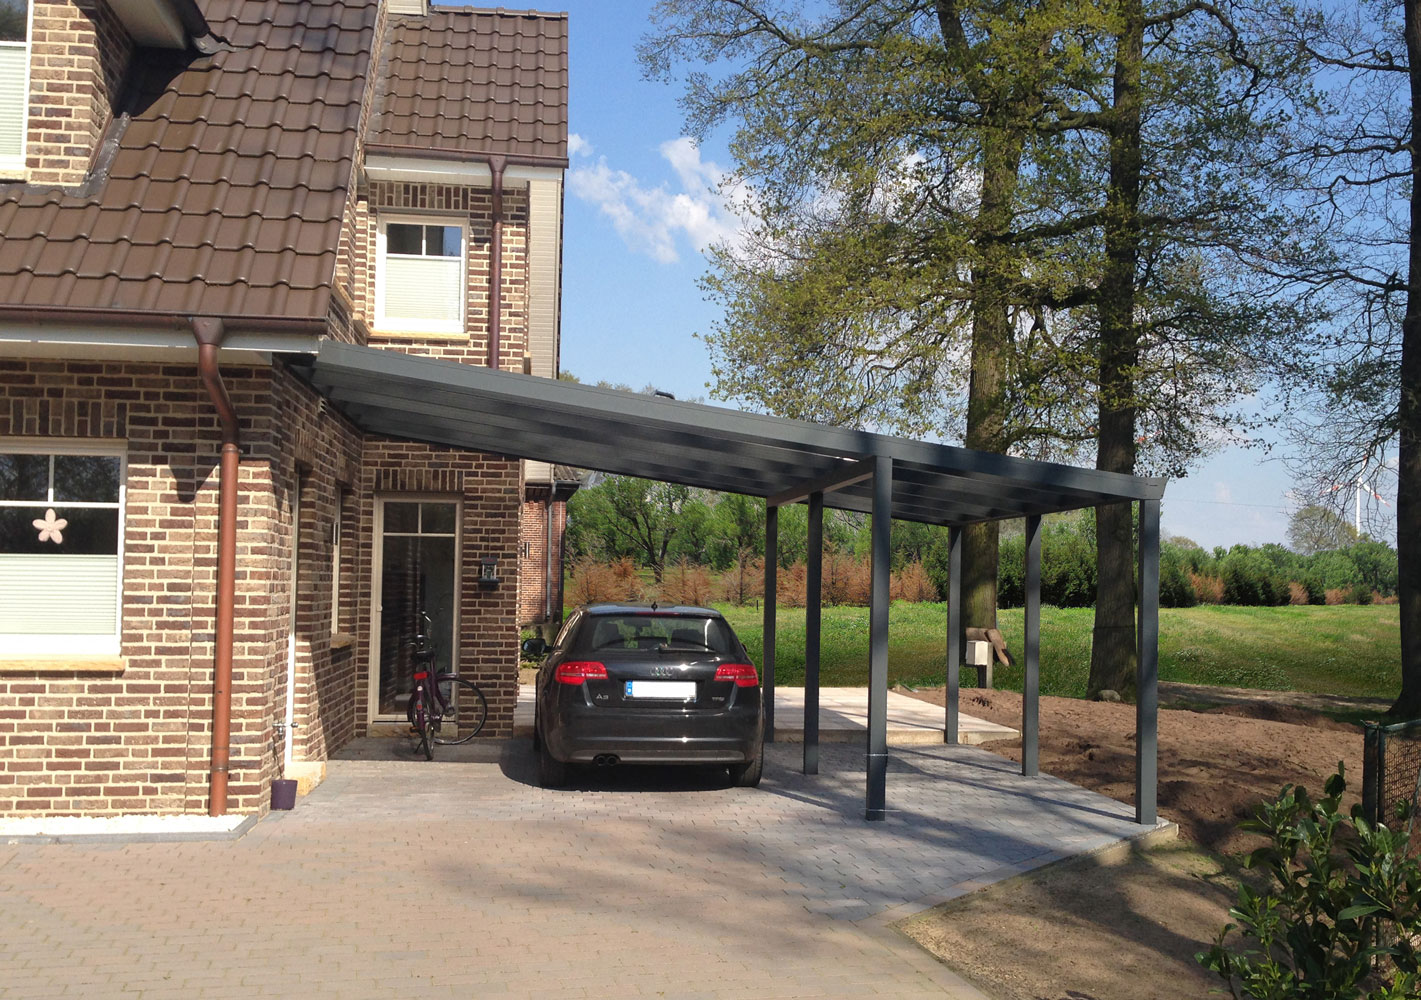 Carport in Anthrazit